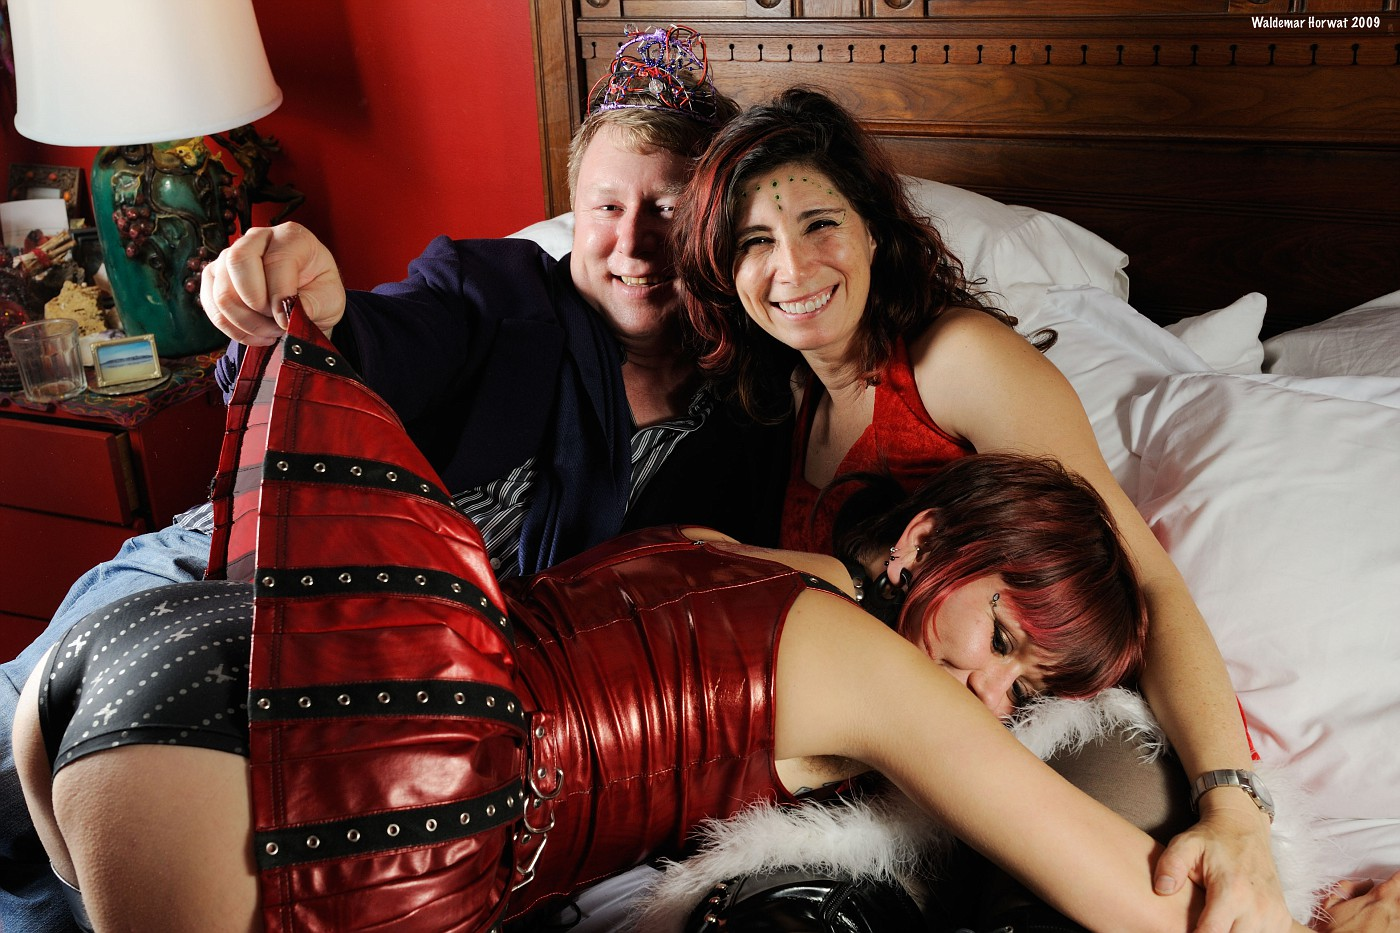 Eric, Melanie, and Melody